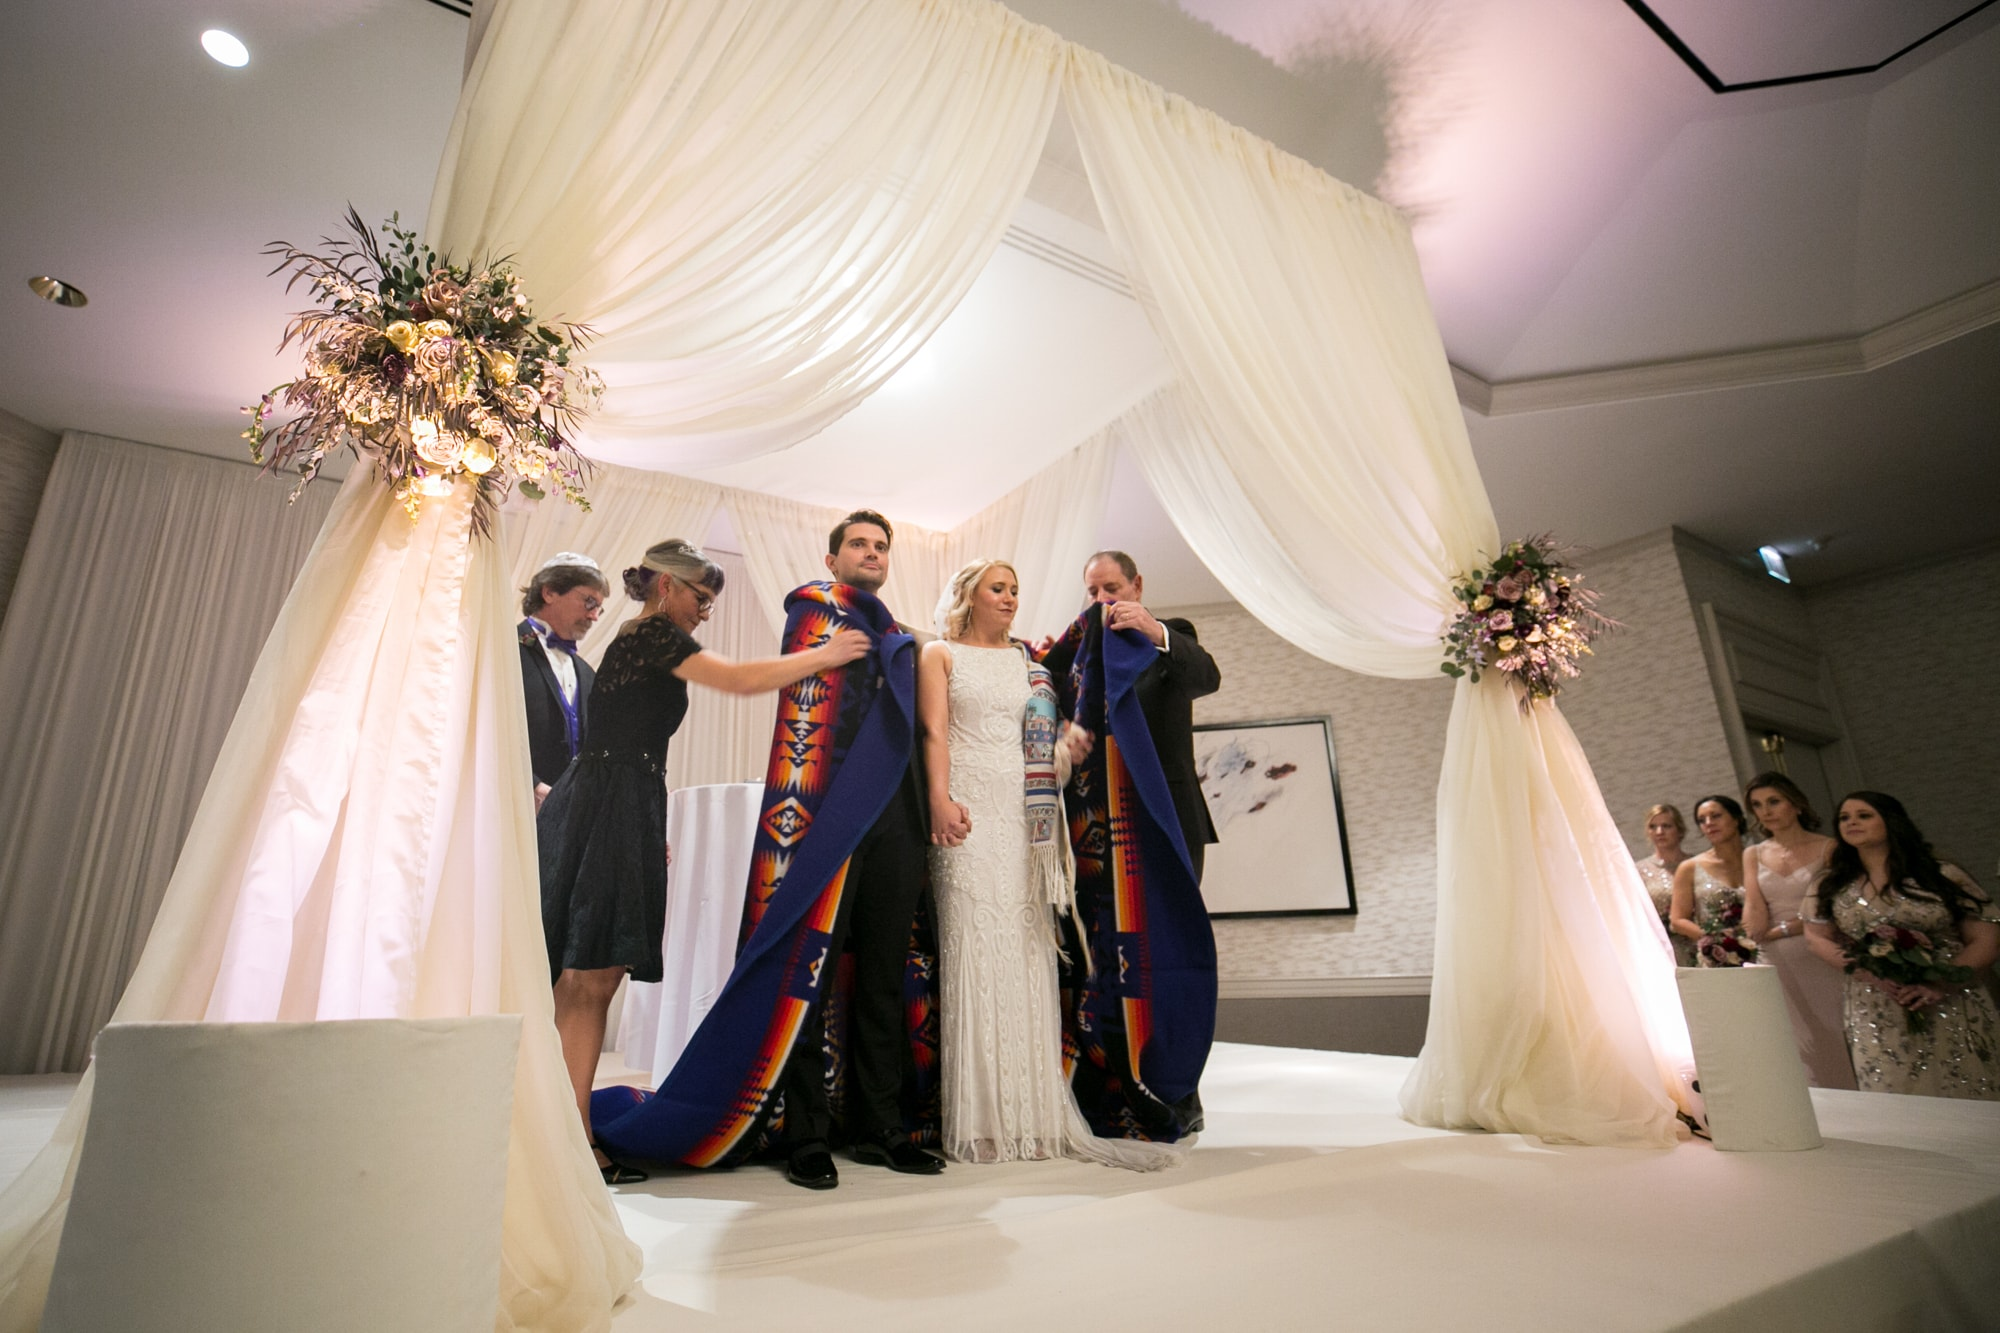 Announcing Bride and Groom at Jewish Wedding Ceremony